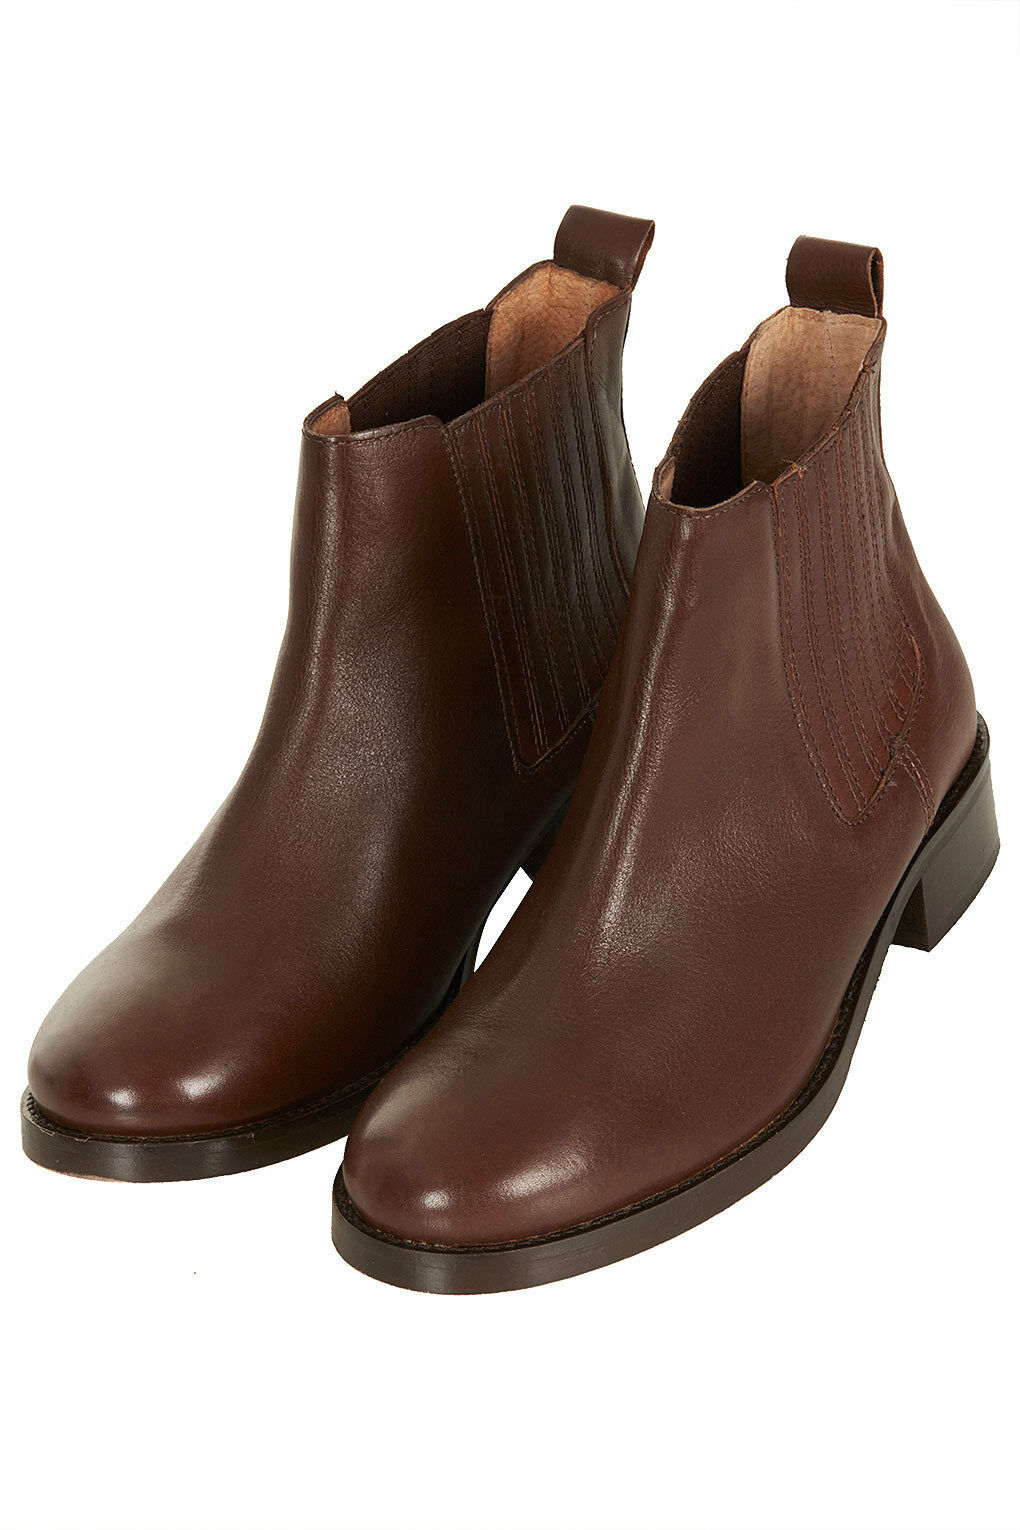 TOPSHOP AUGUST BROWN CHOCOLATE LEATHER CLASSIC CHELSEA BOOTS 4 37